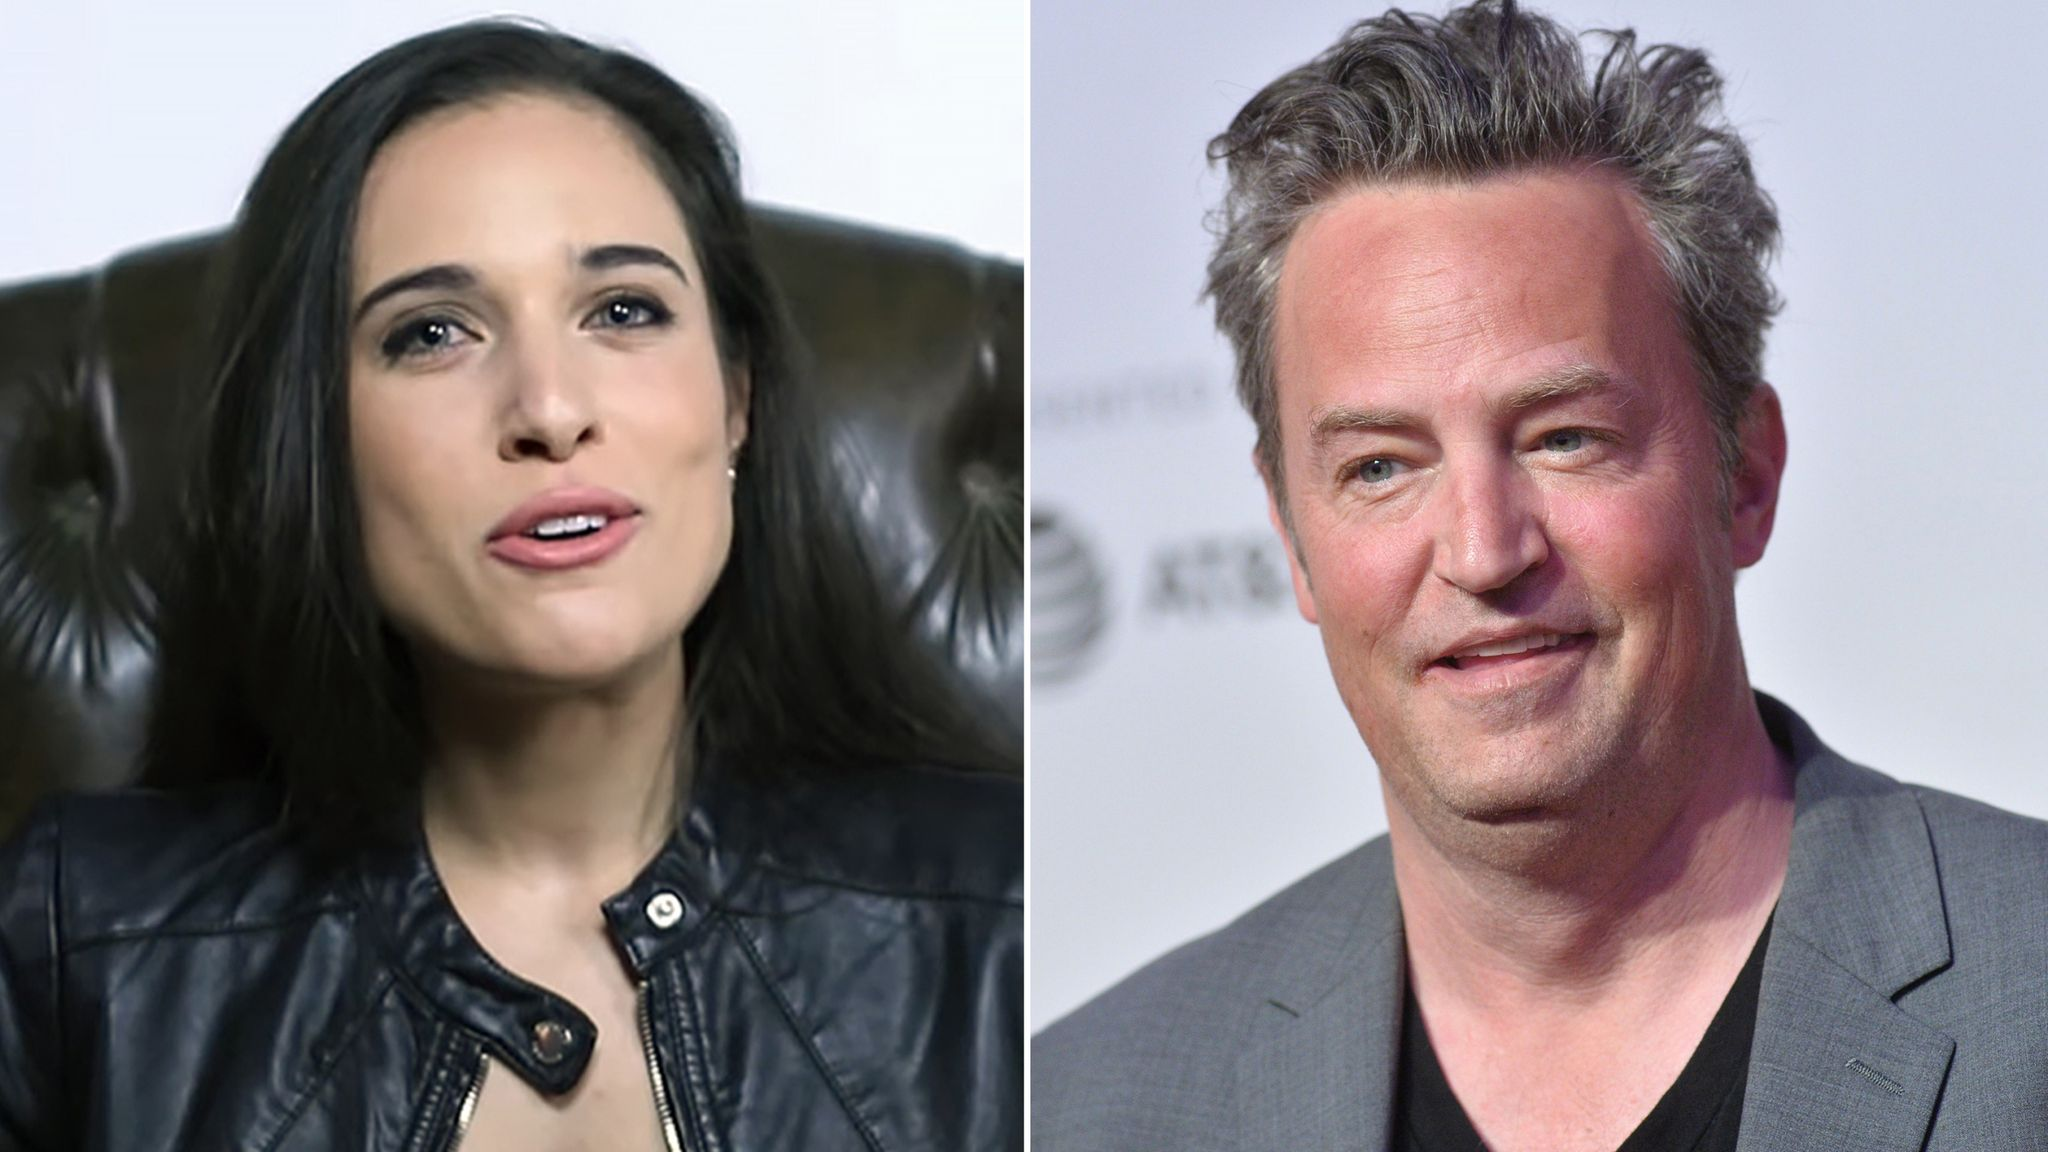 Friends Star Matthew Perry, 51, Is Engaged To GF Molly